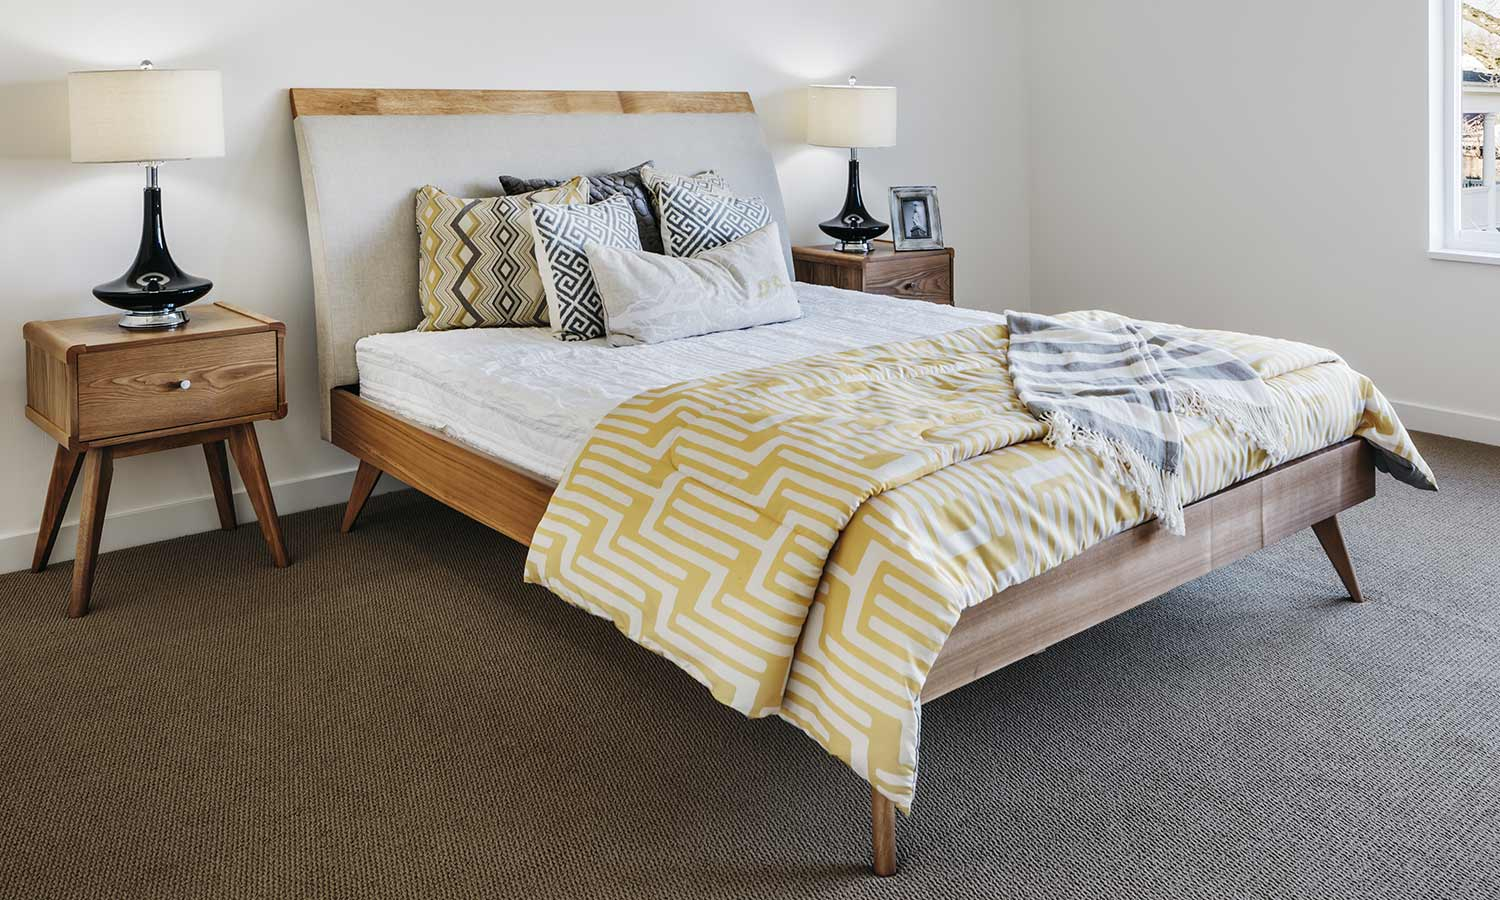 A bed with the legs sitting at an angle with multi-patterned pillows and blankets on top.